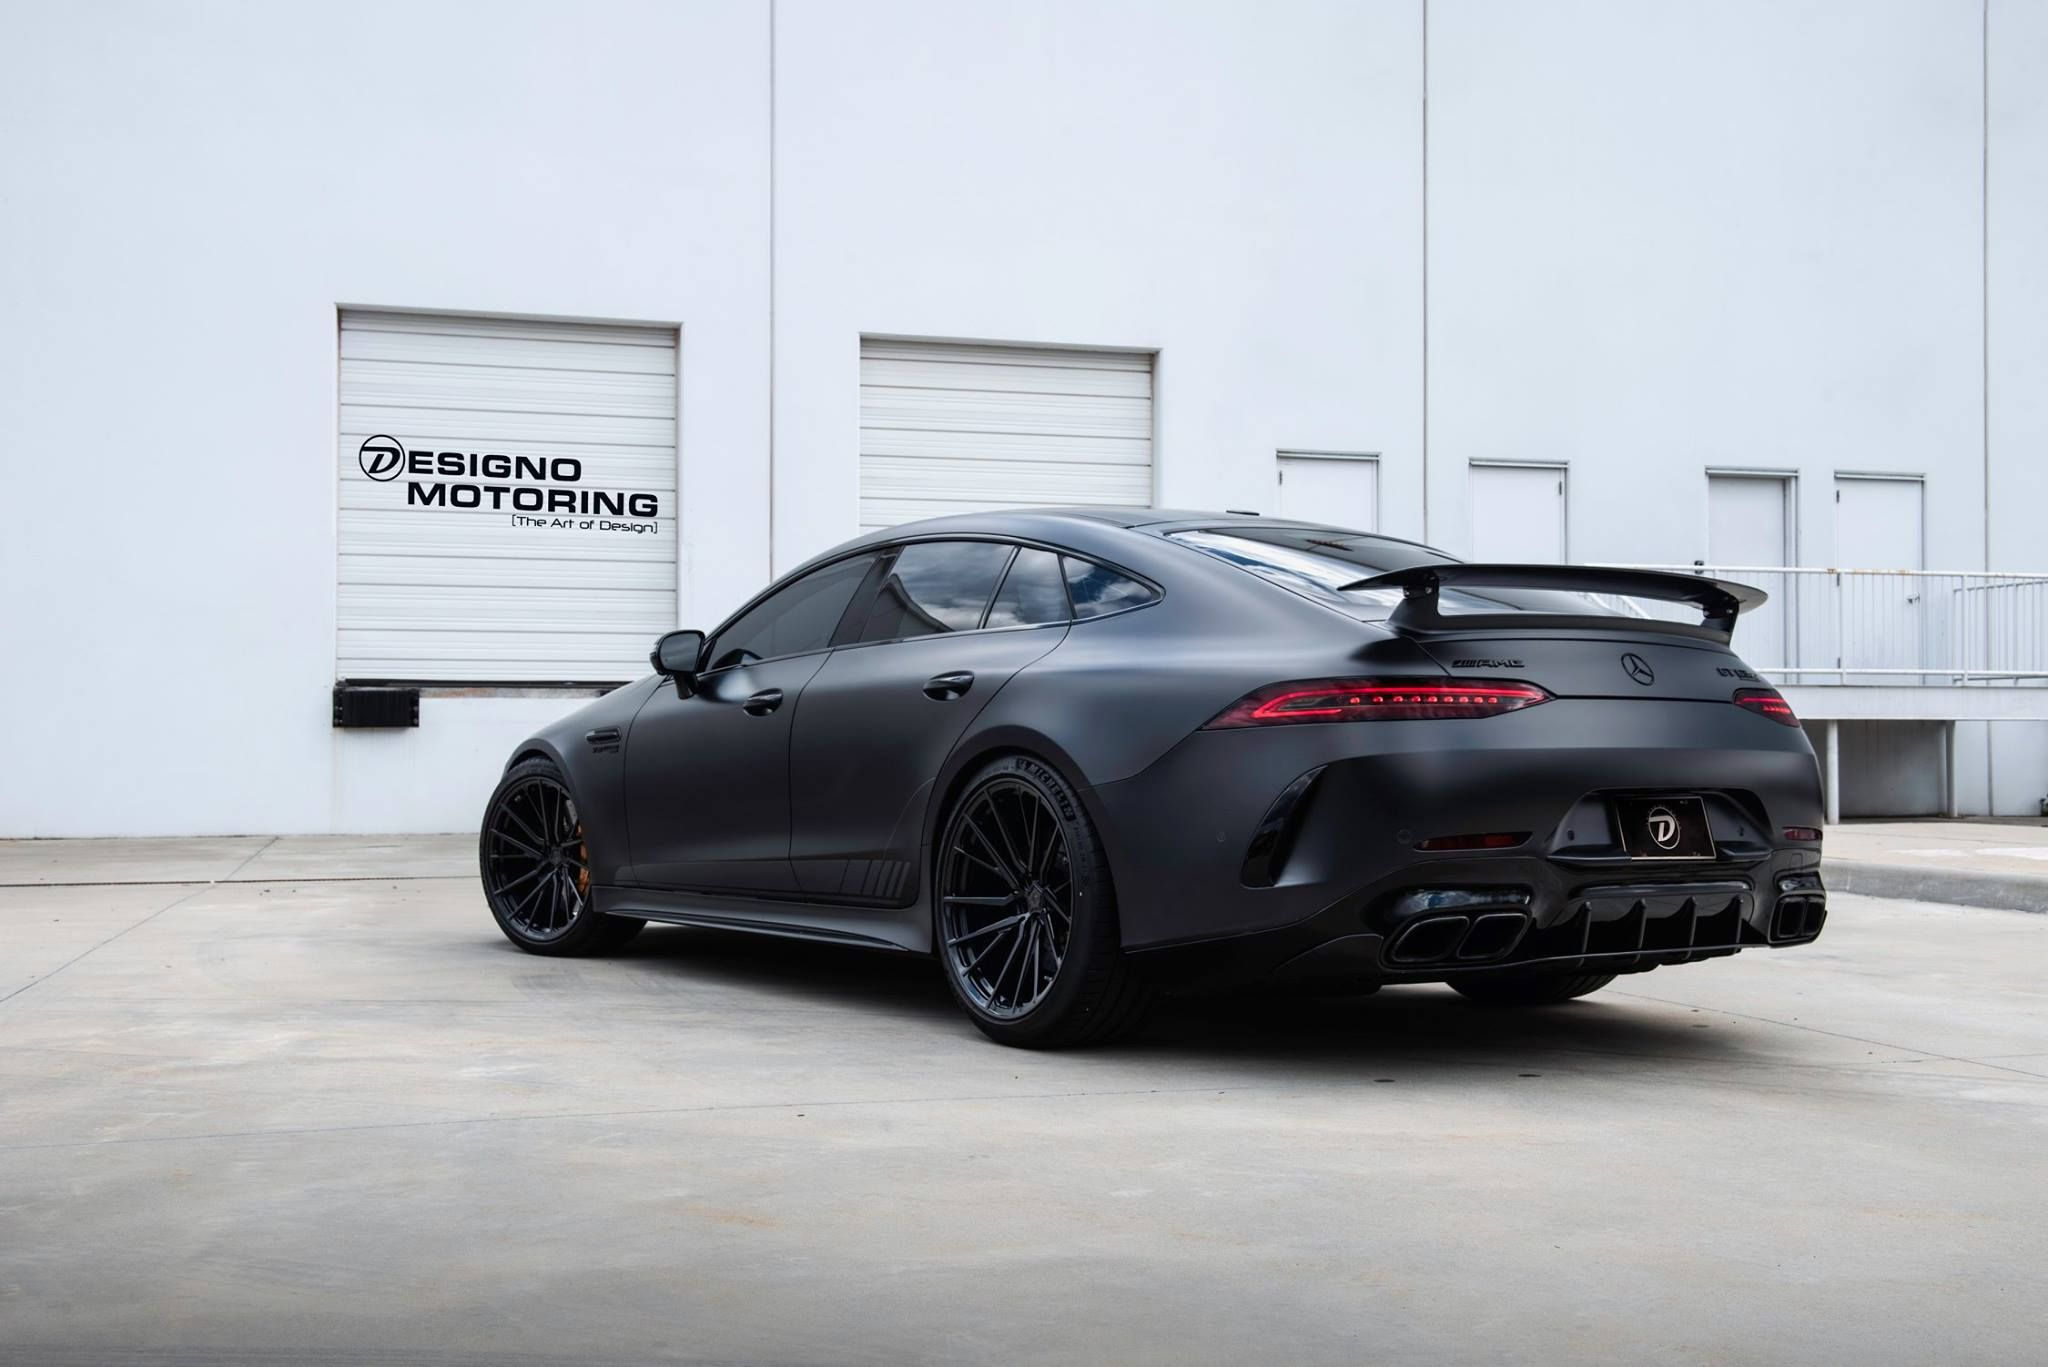 Mercedes Amg Gt 63 S 4 Door Coupe By Renntech Packs 783 Hp 584 Kw Mercedes Amg Amg Mercedes Benz Amg